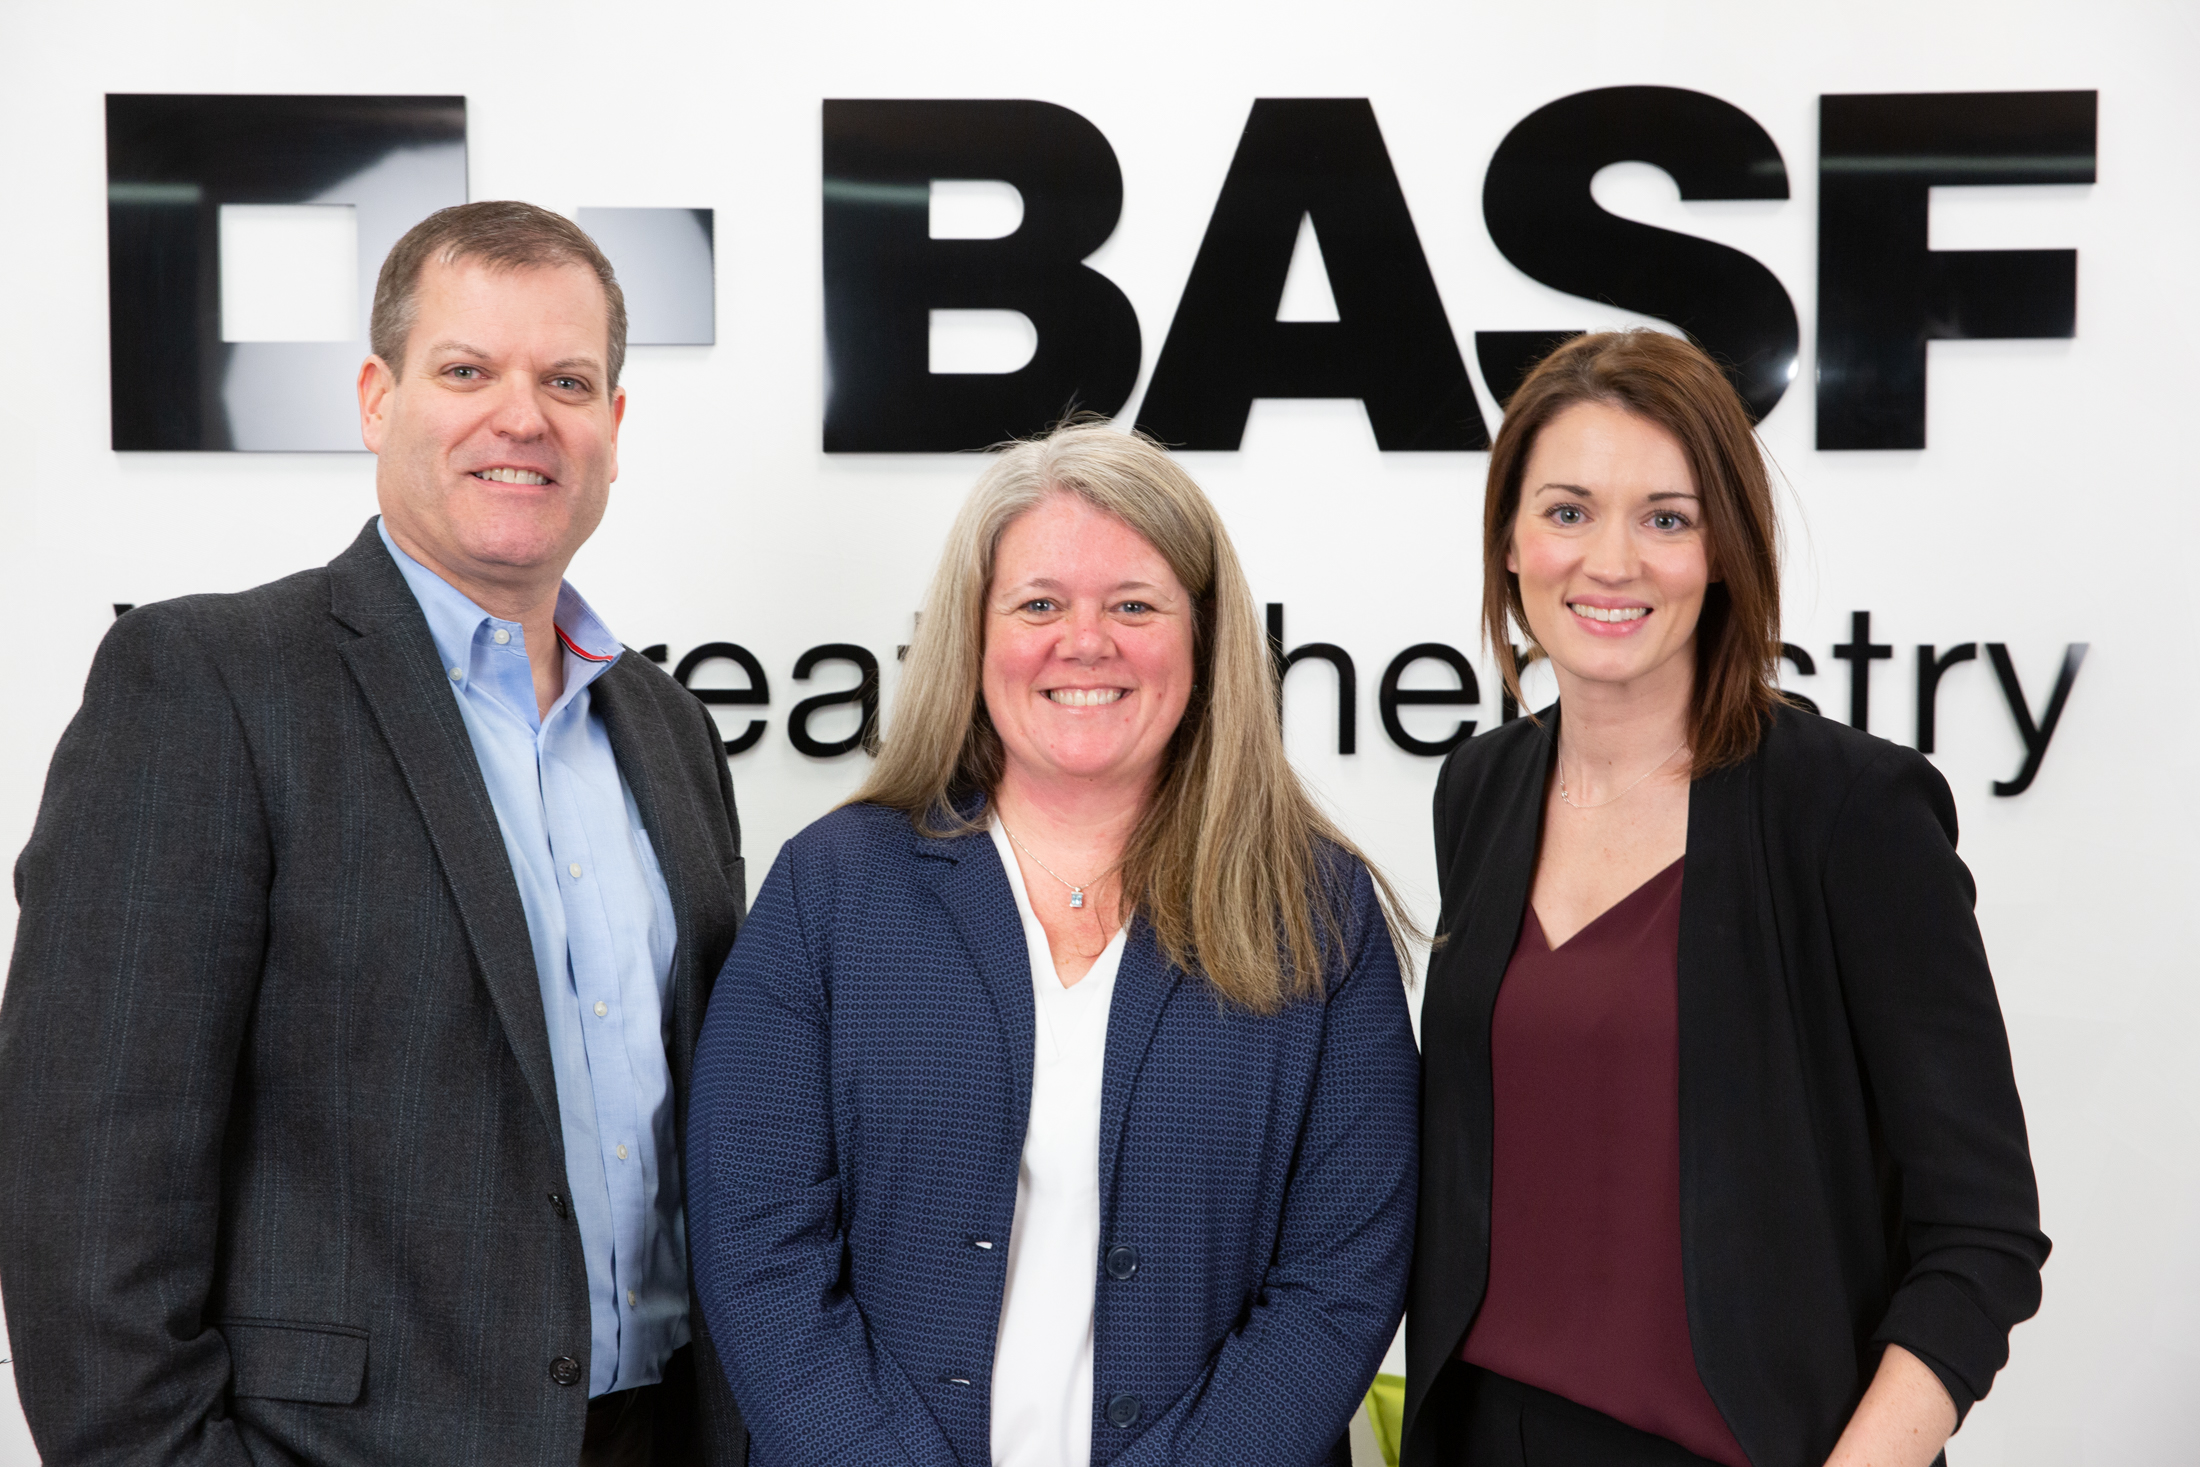 4-H Canada, BASF strengthen partnership with renewed, three-year investment that empowers youth to build stronger communities